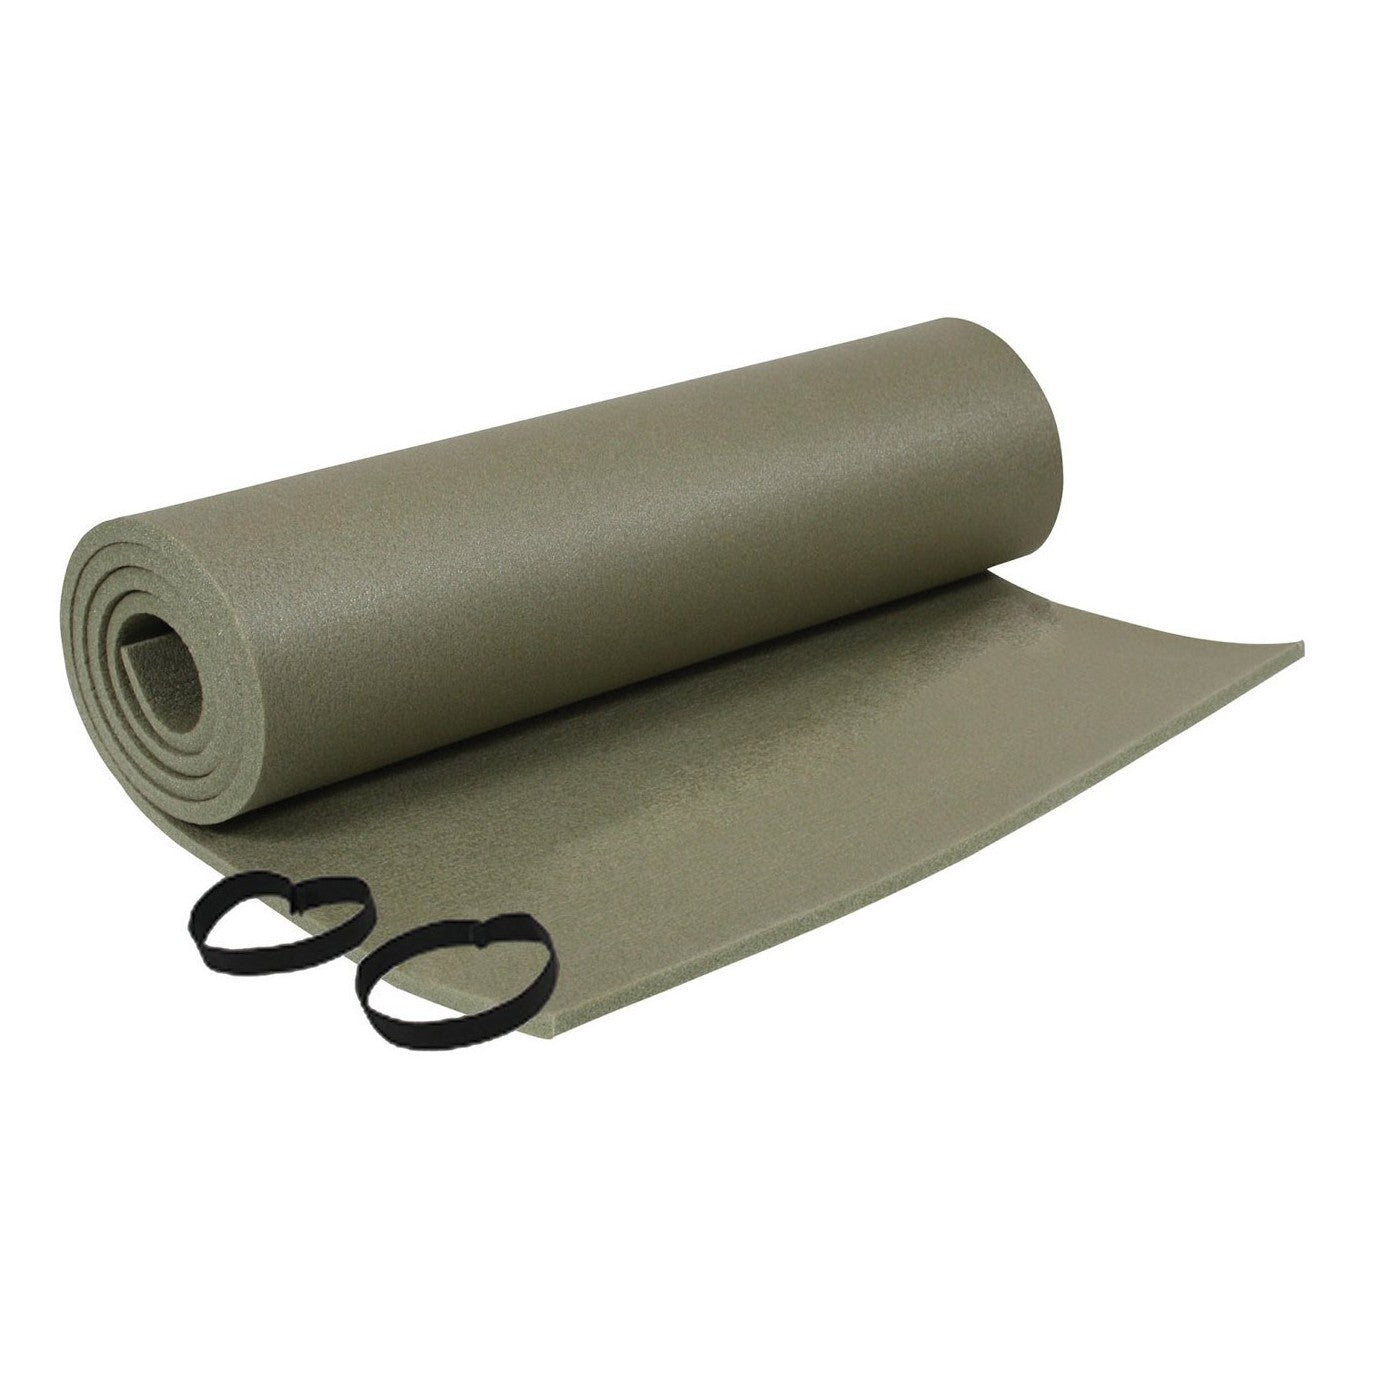 Foam Sleeping Pad With Straps Olive